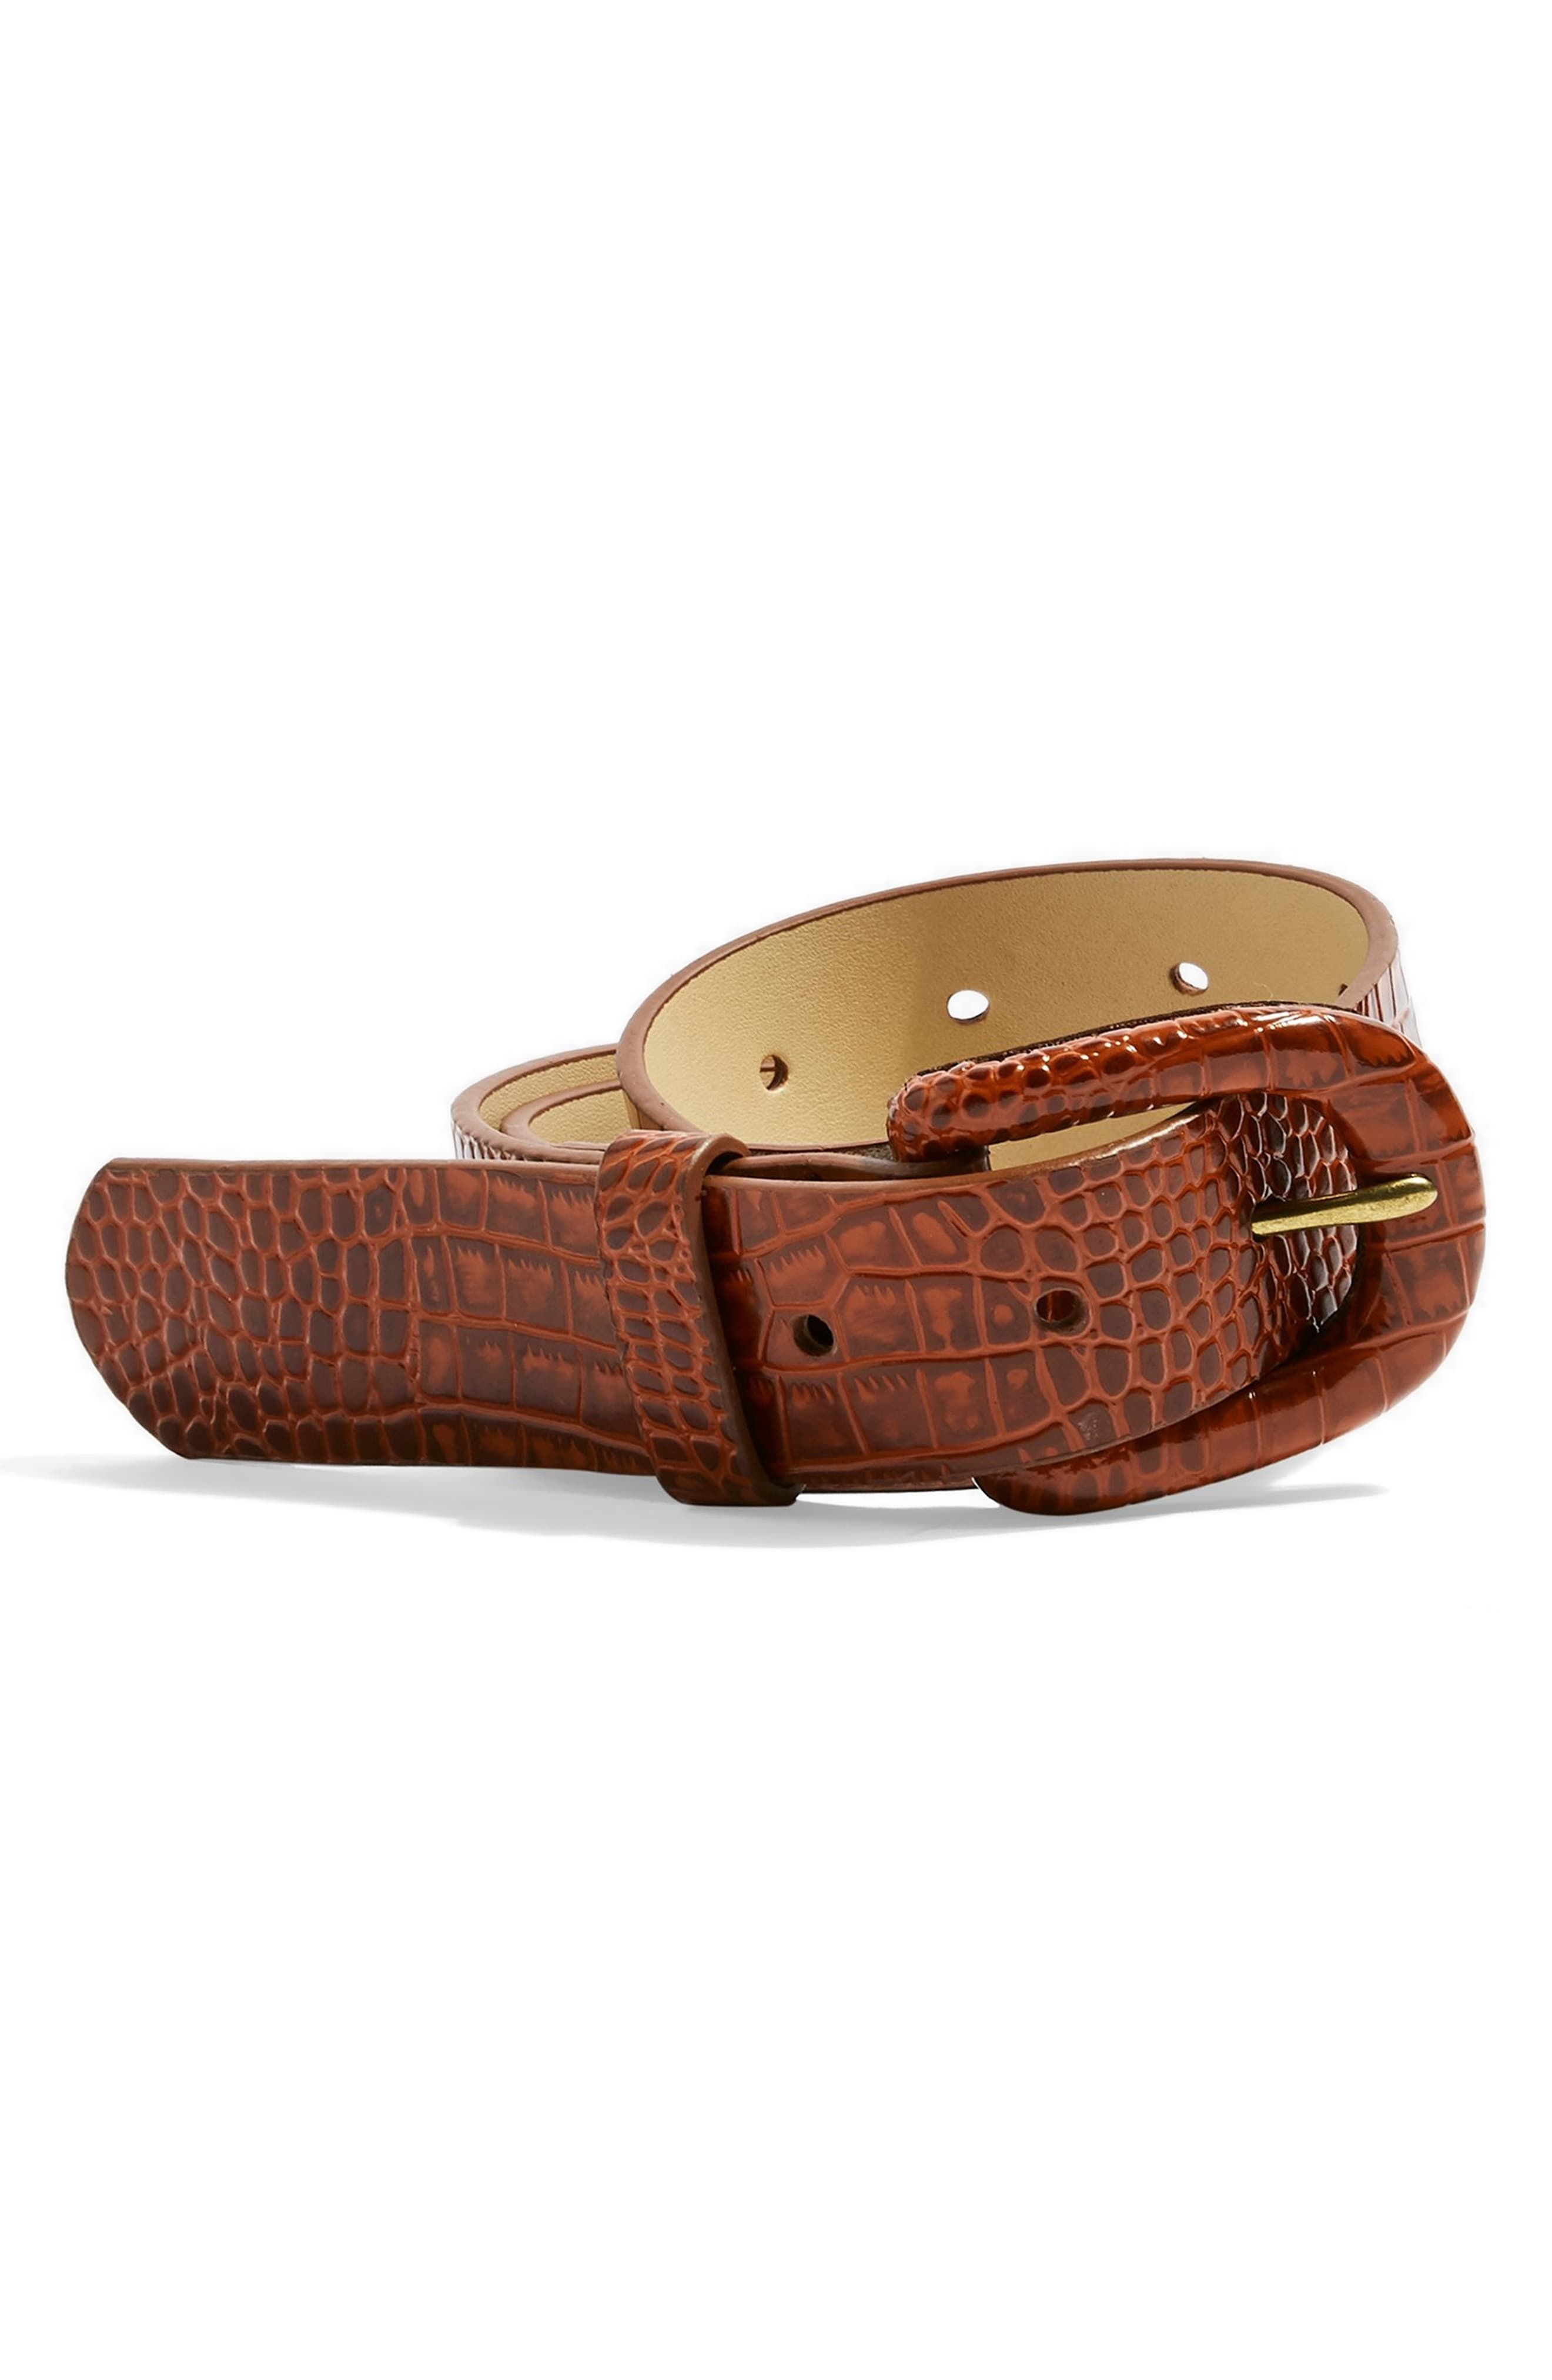 Genuine Quality Vegetable Tanned Leather Woven Plaited Braided Men Leather Belt